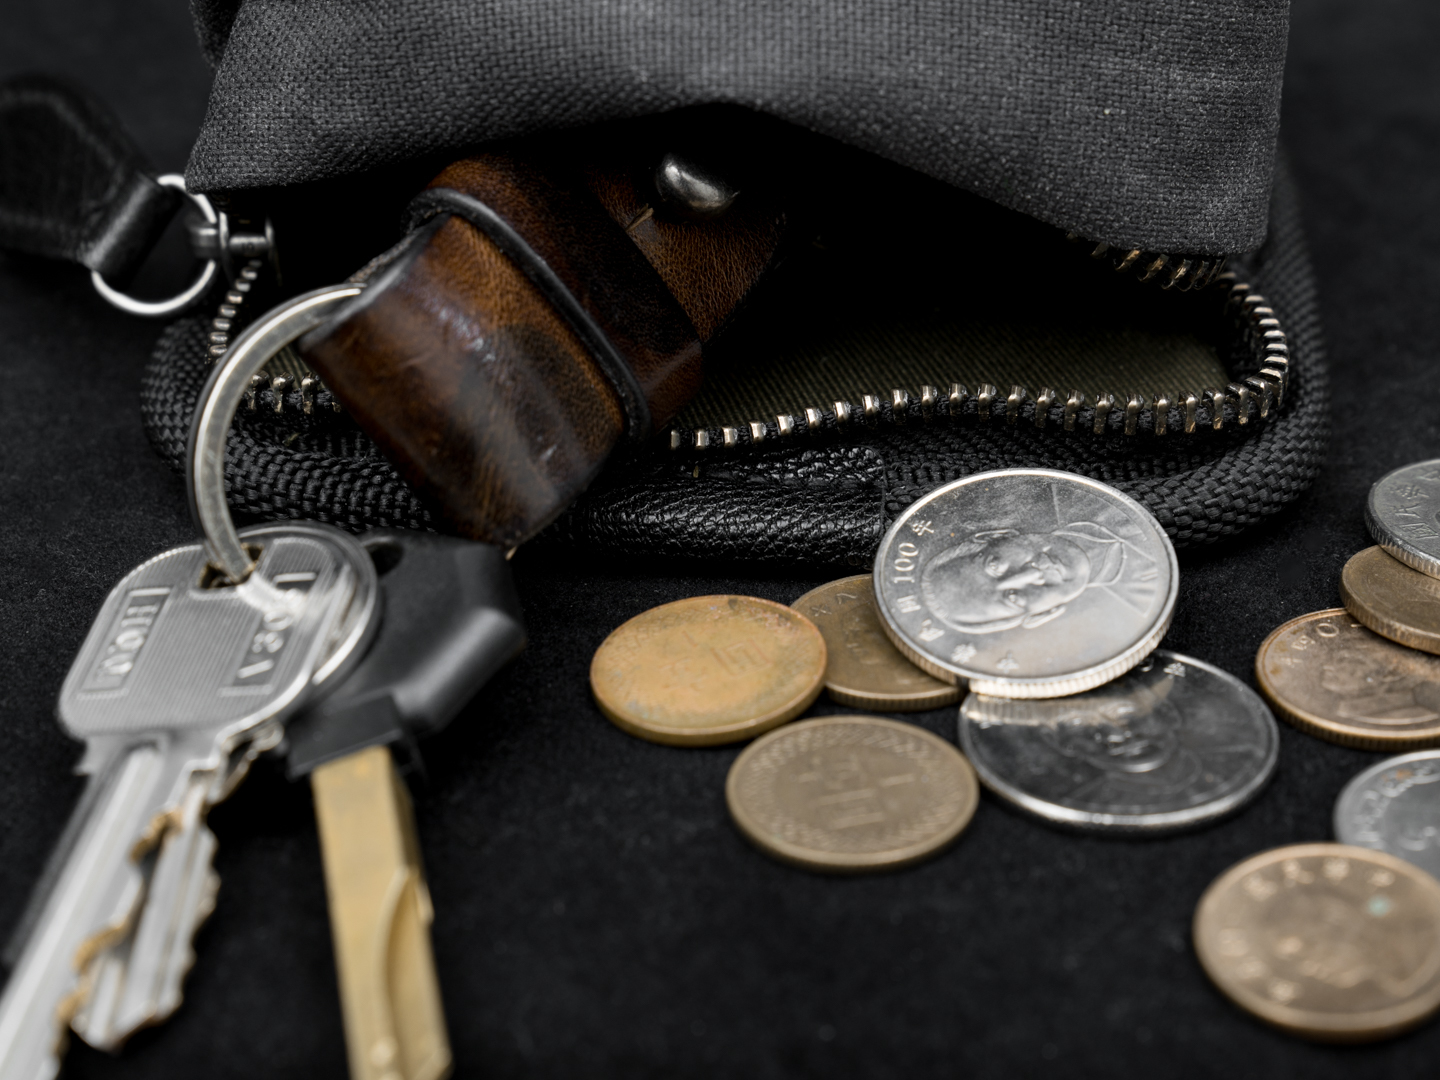 Zippered pocket module for keys and coin change.